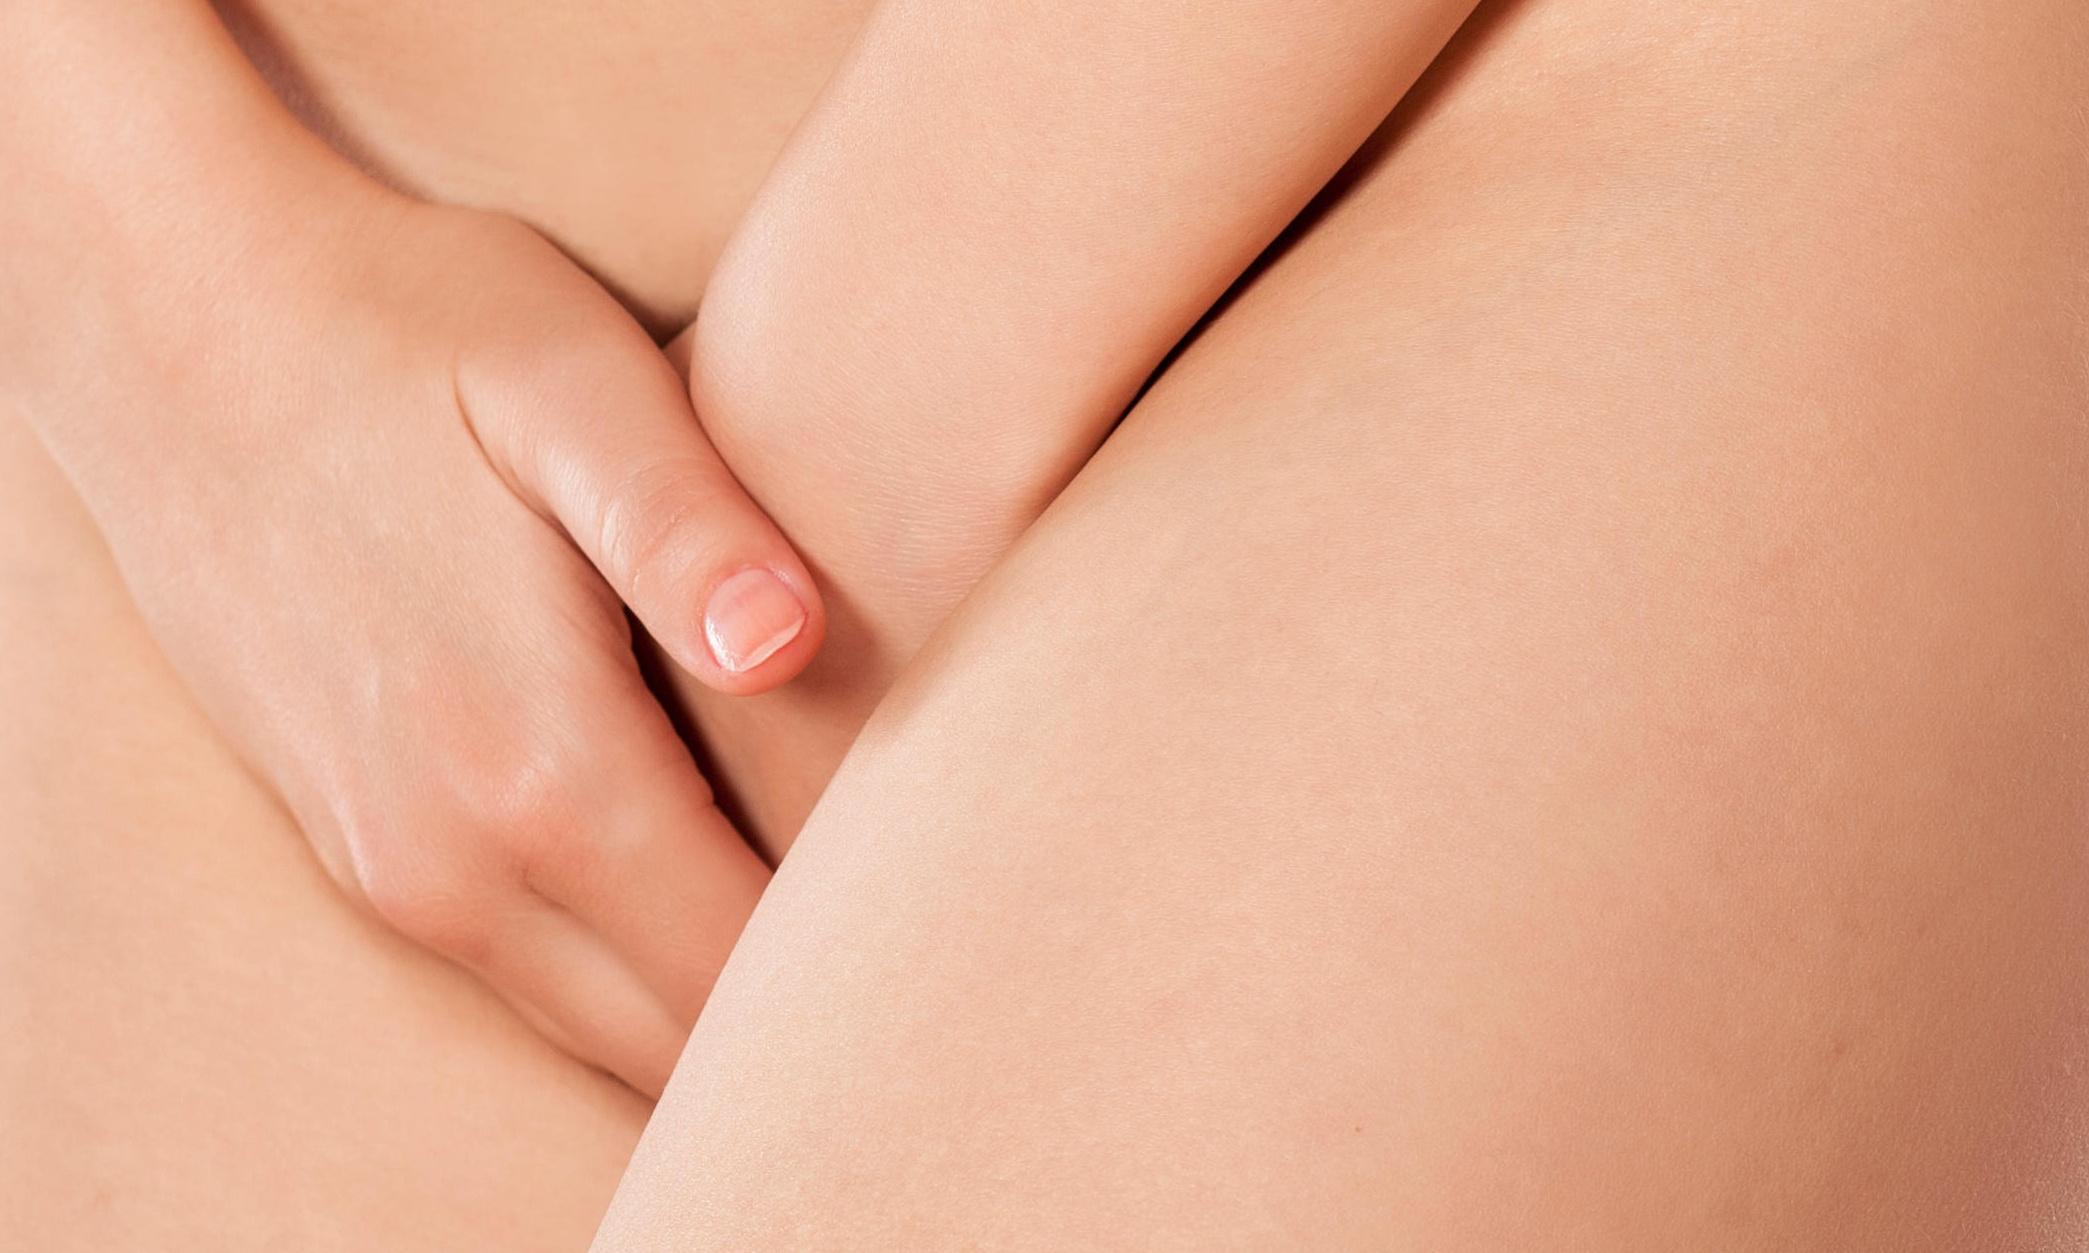 The clitoris is a gift, so why is there an ingrained fear of talking about it?